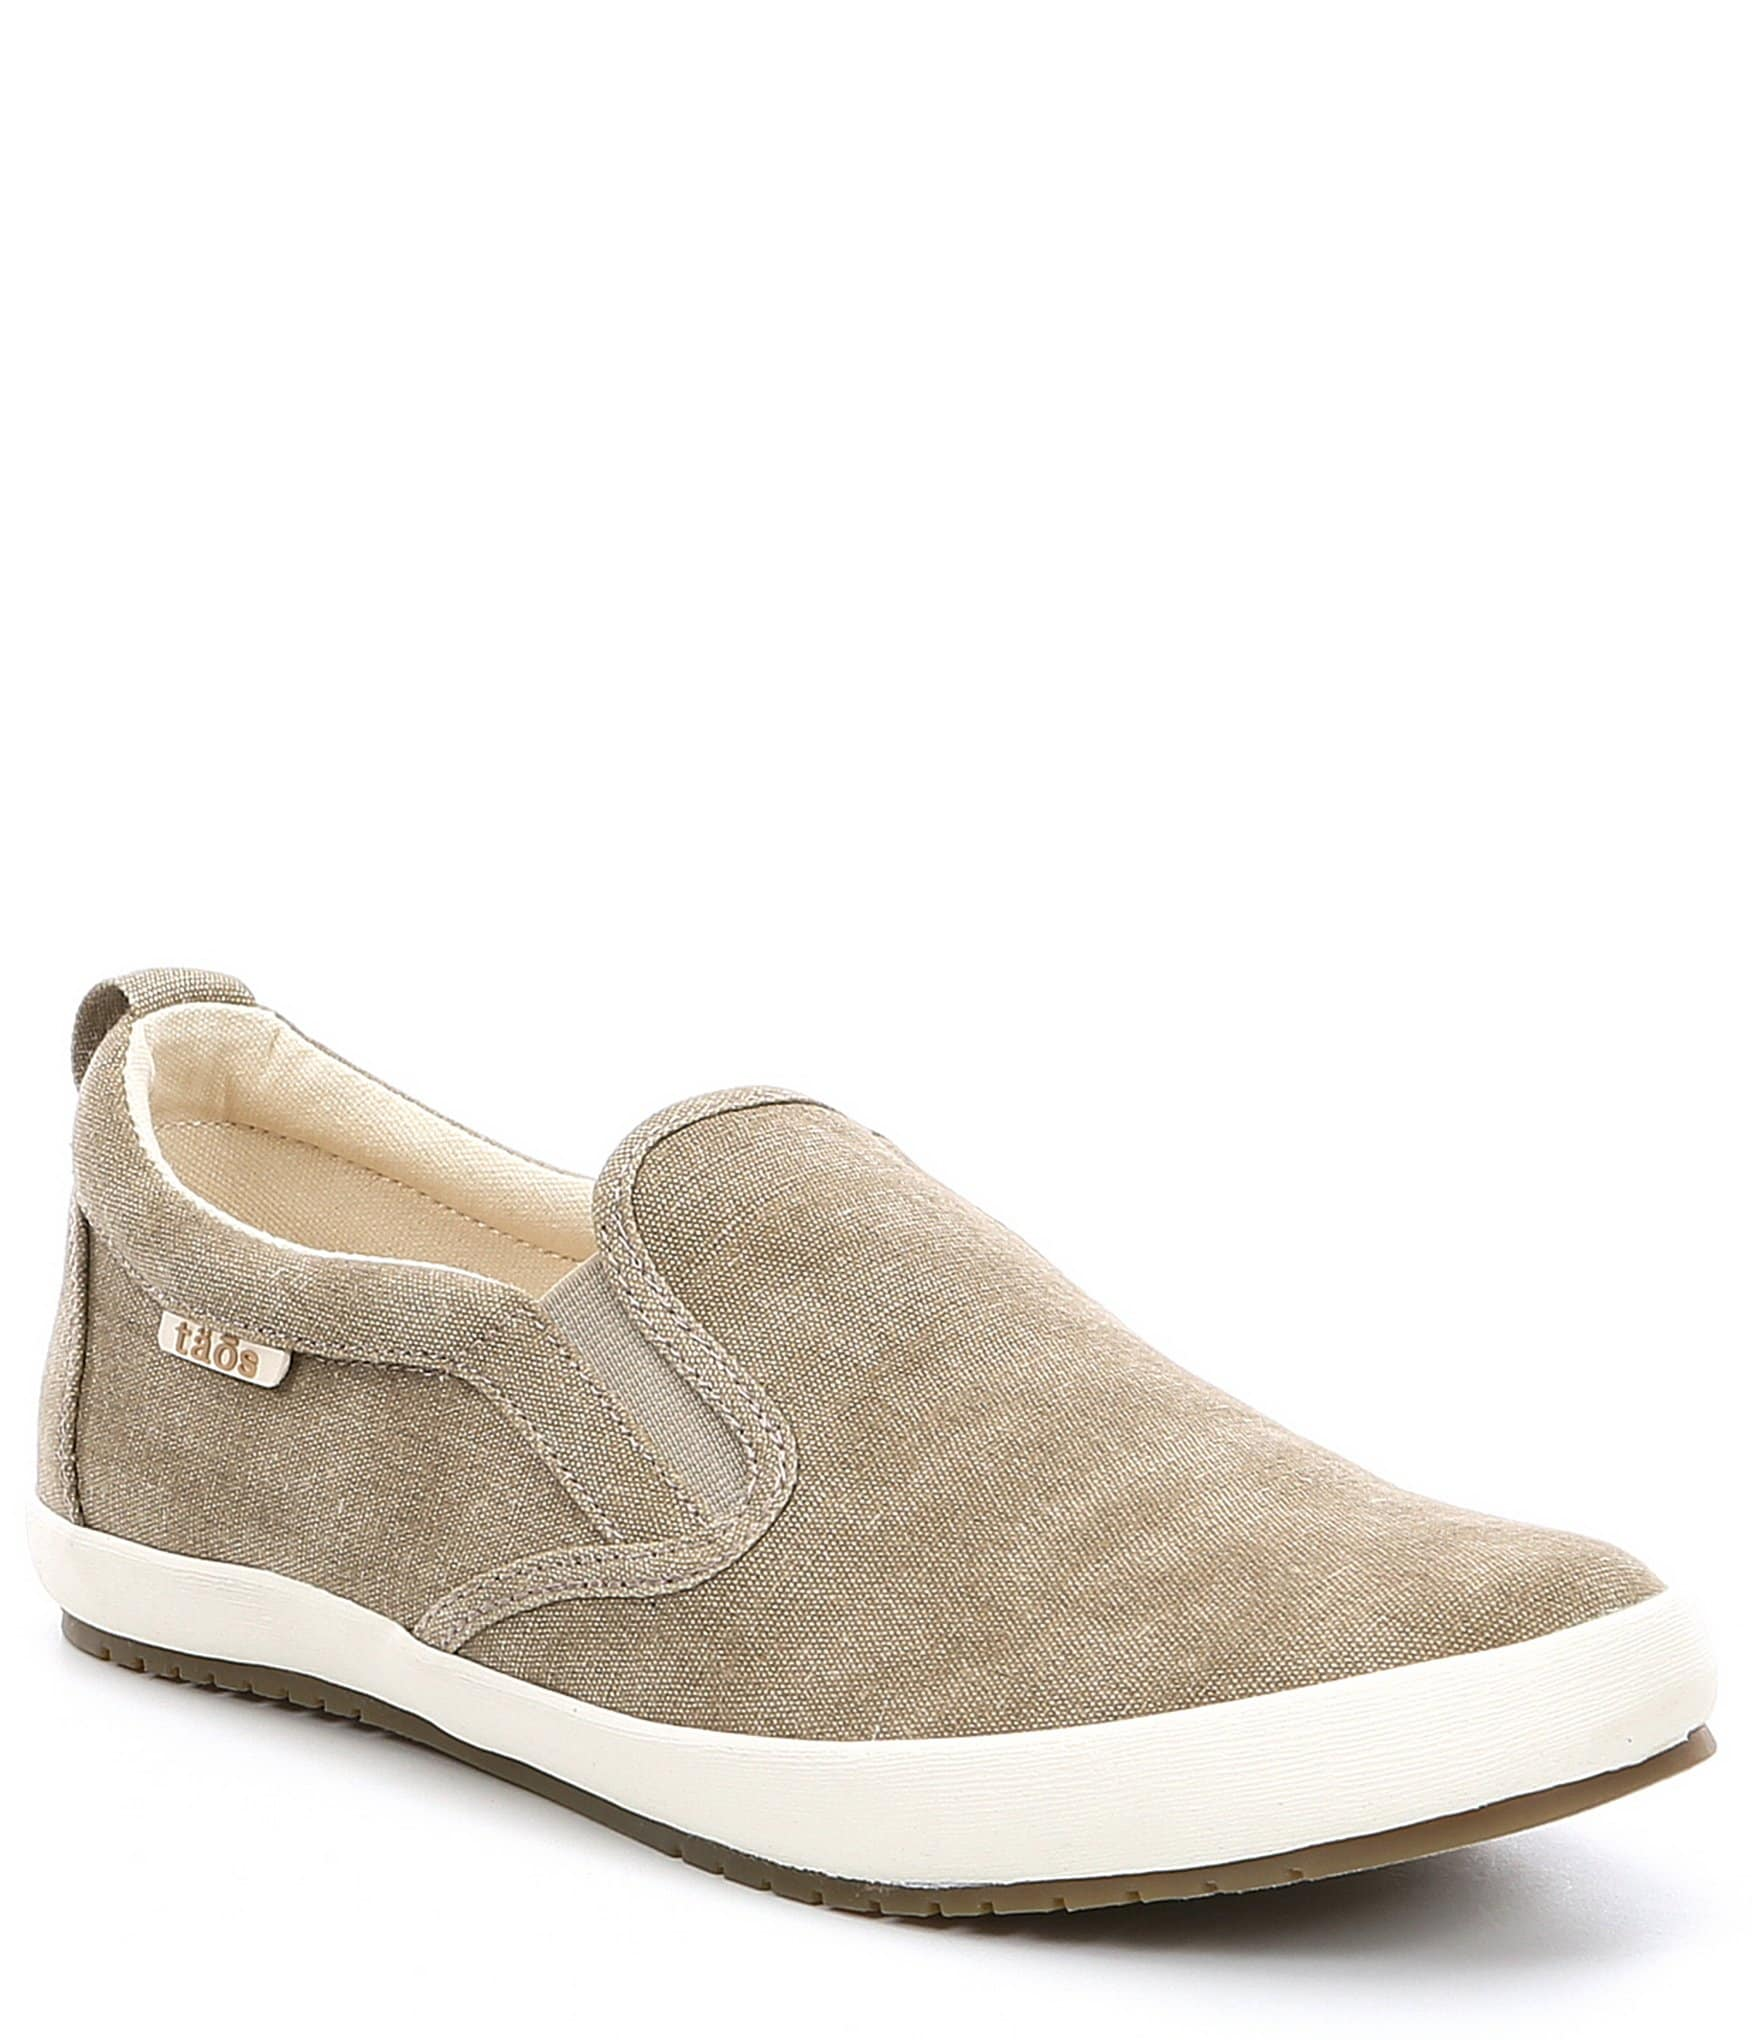 taos shoes on sale